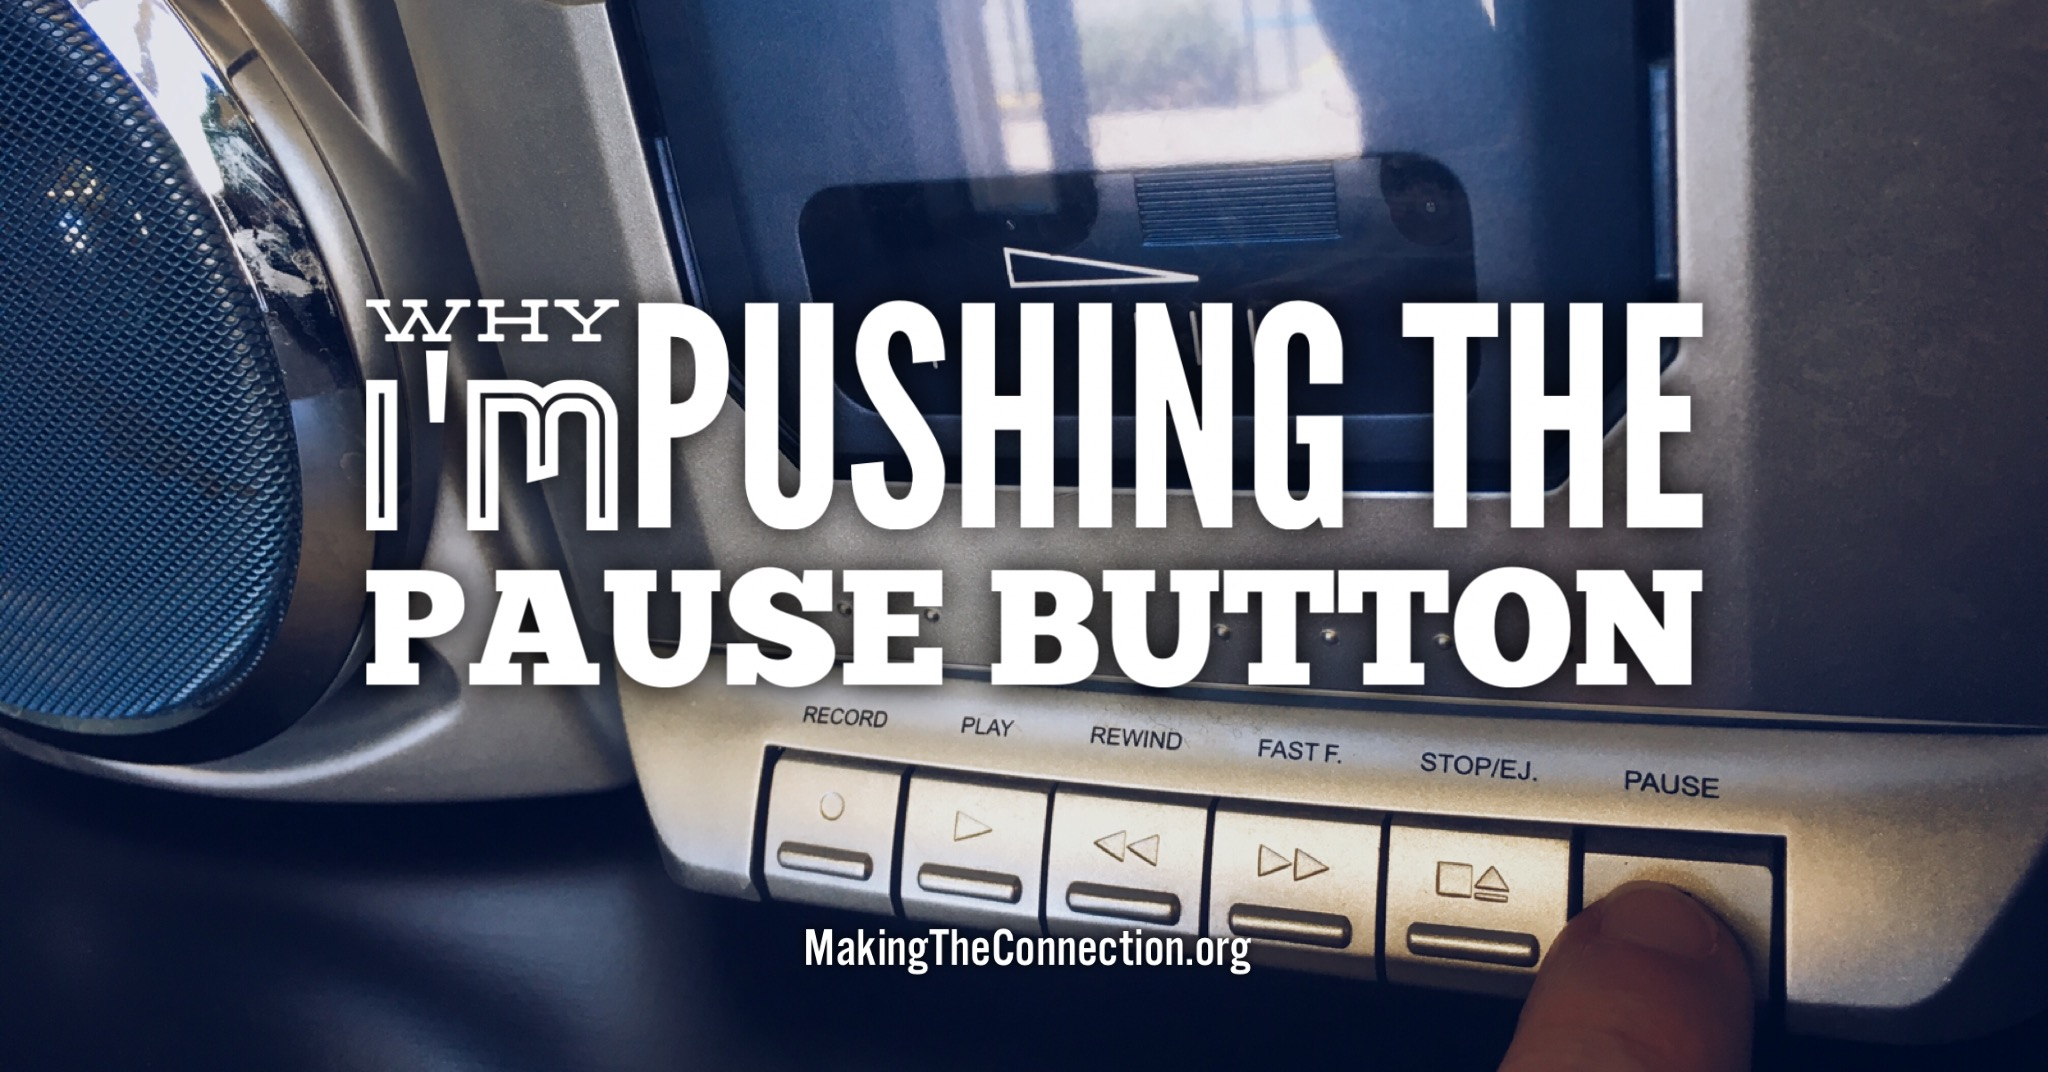 Why I'm Pushing the Pause Button